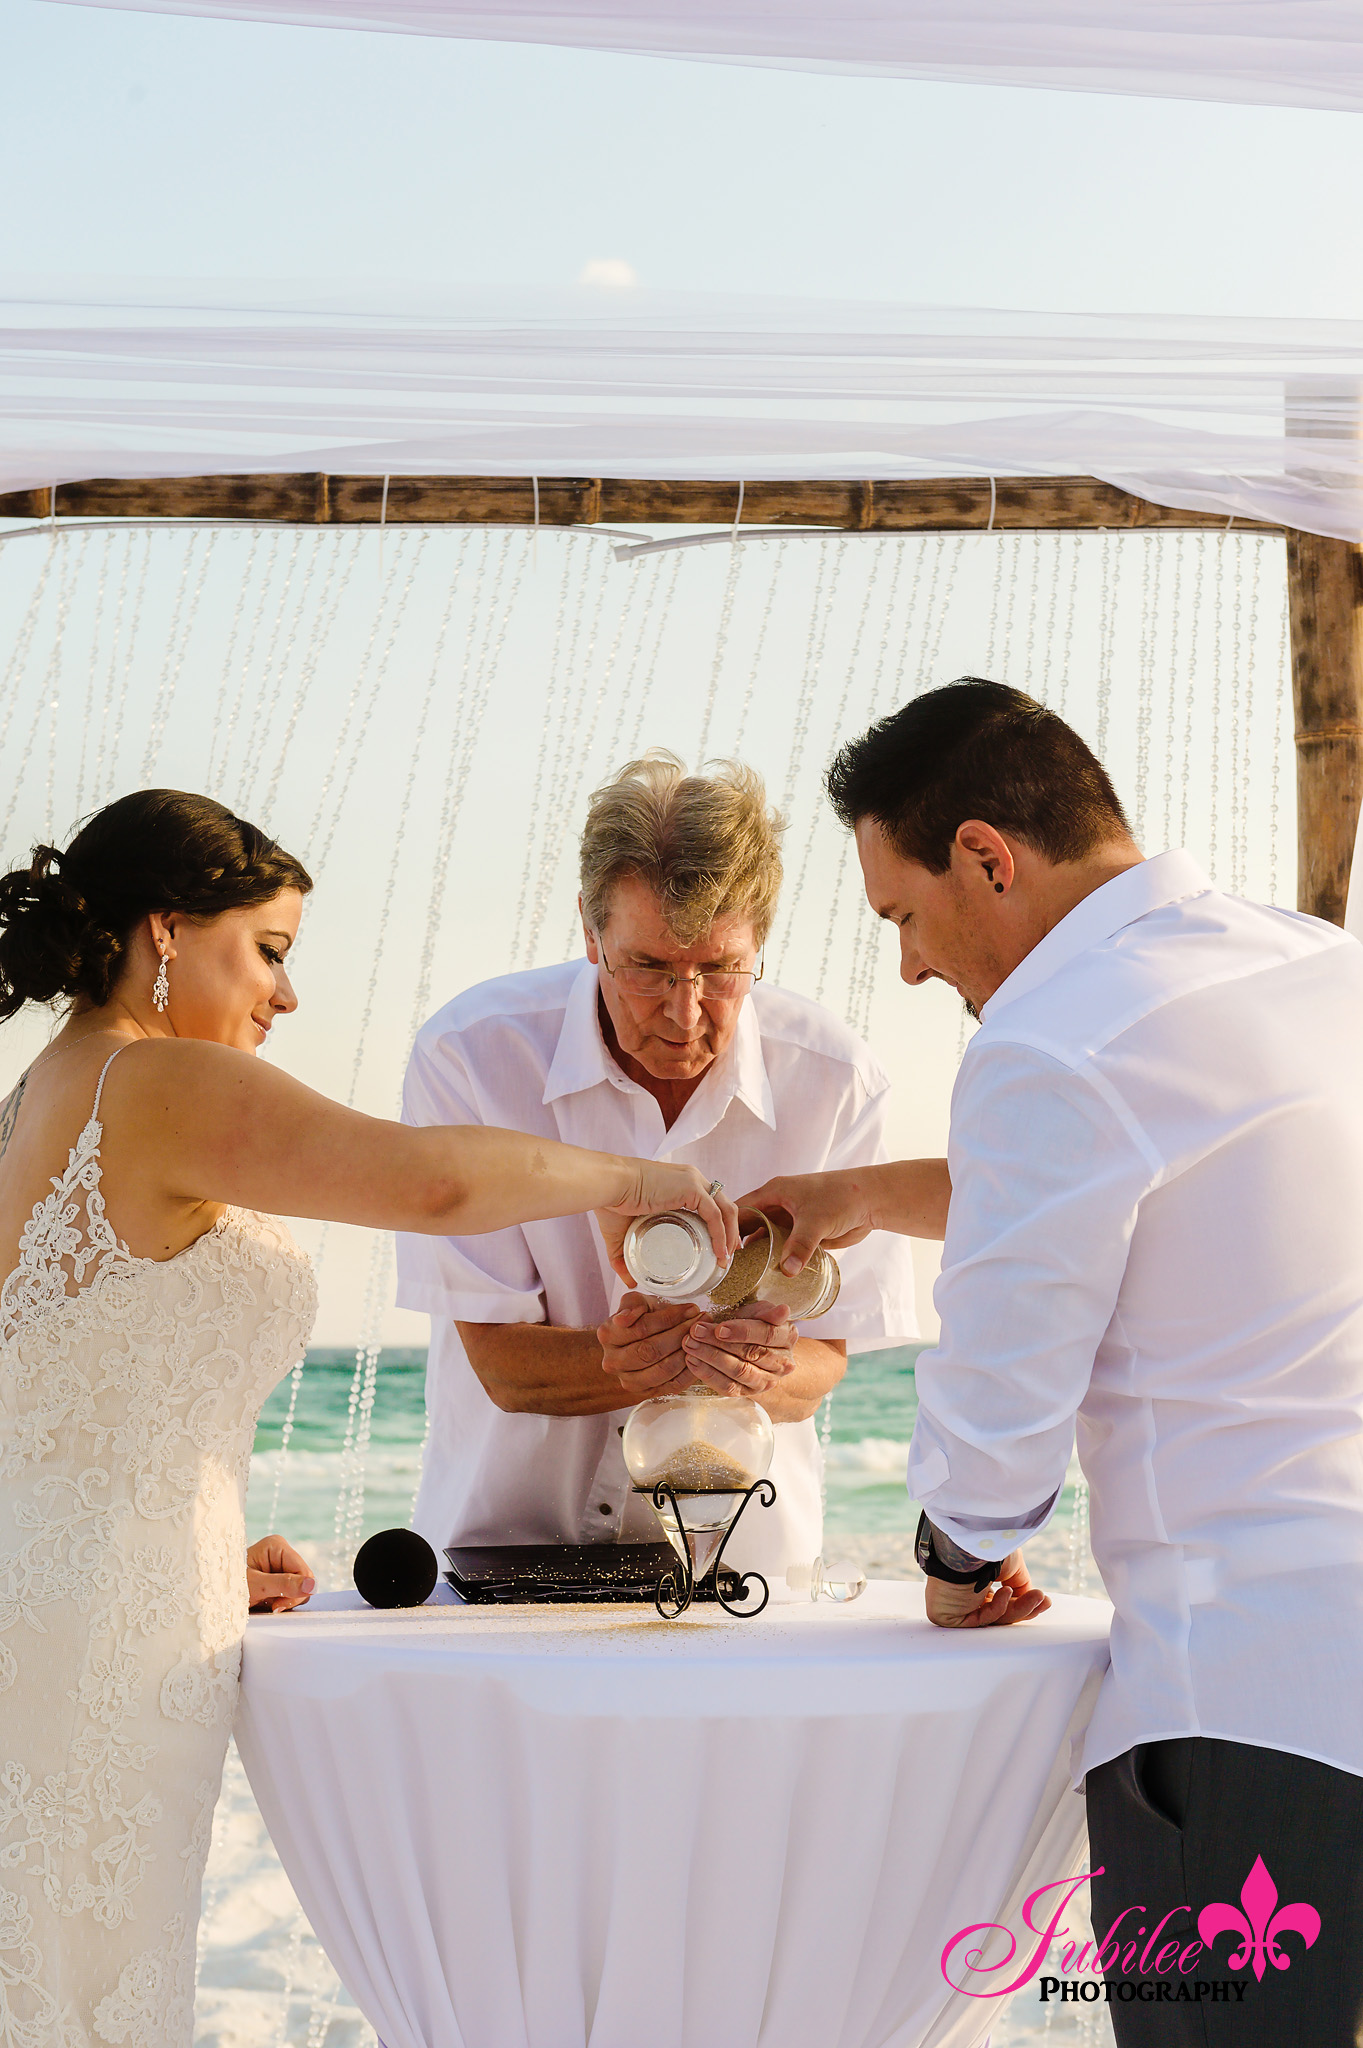 30A_Wedding_Photographer_7163